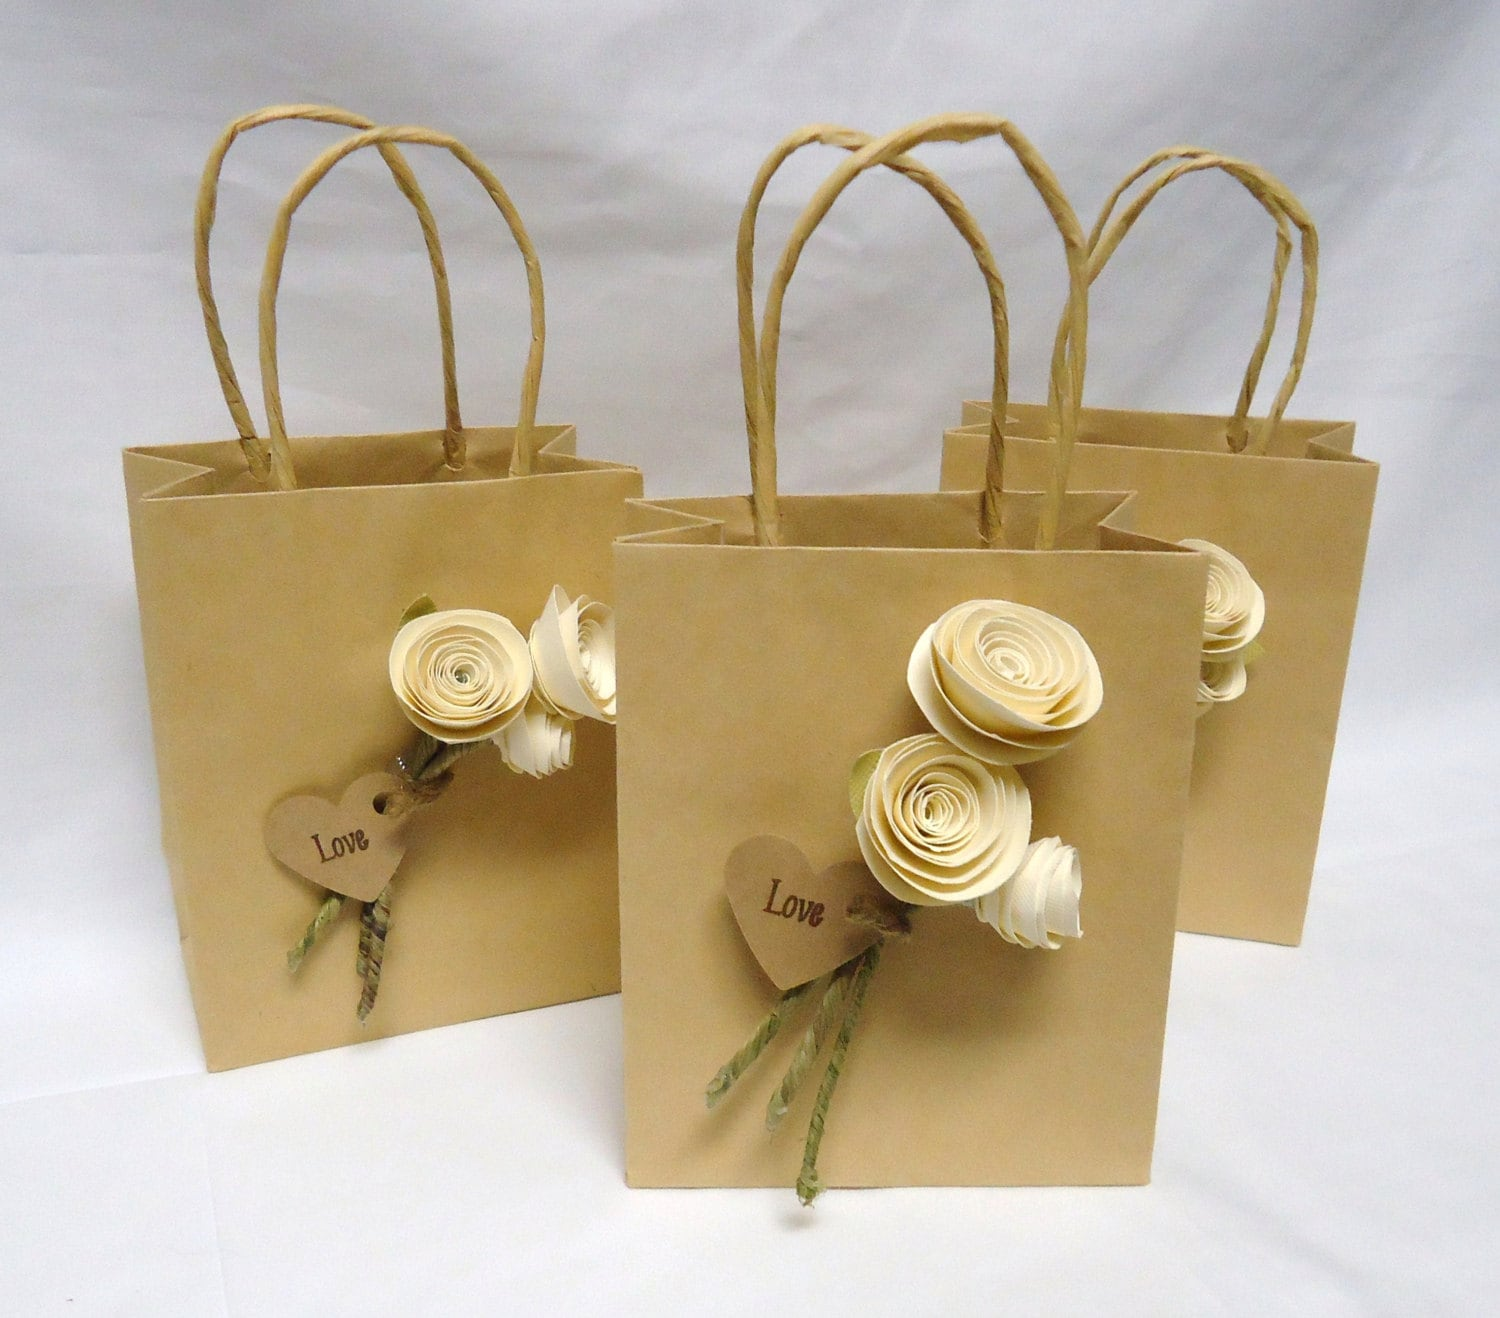 Wedding Gift Bags Online : Wedding favor bags. wedding gift bags. gift bags. Paper rose wedding ...